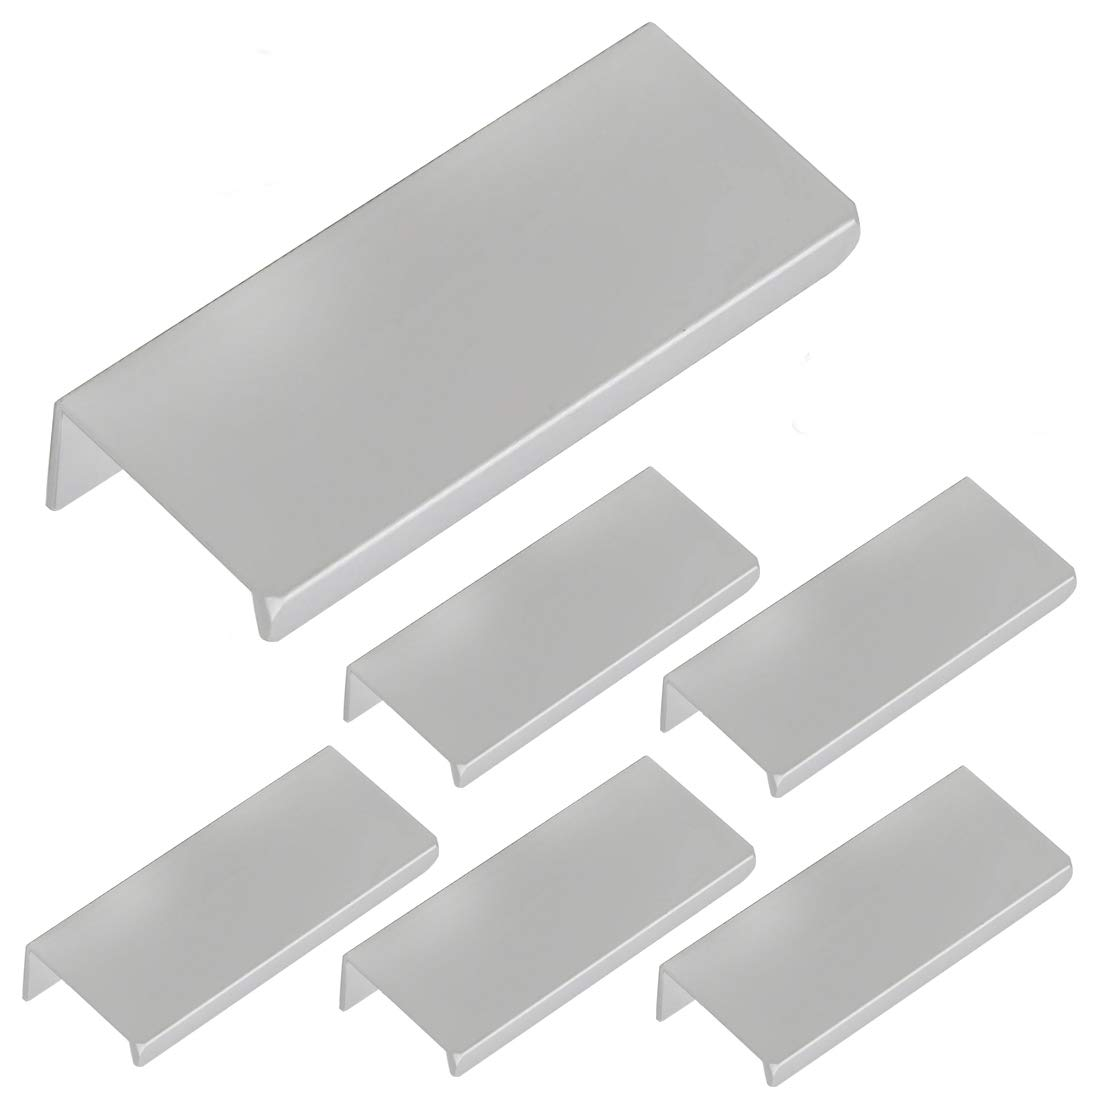 10 Pack Rok Hardware 1-31//32 Hole Centers Modern Style Finger Edge Pull Aluminum Metal Brushed Stainless Steel Finish Home Kitchen Door Drawer Cabinet 2-3//4 Length Handle P898950SS P898950SS-10